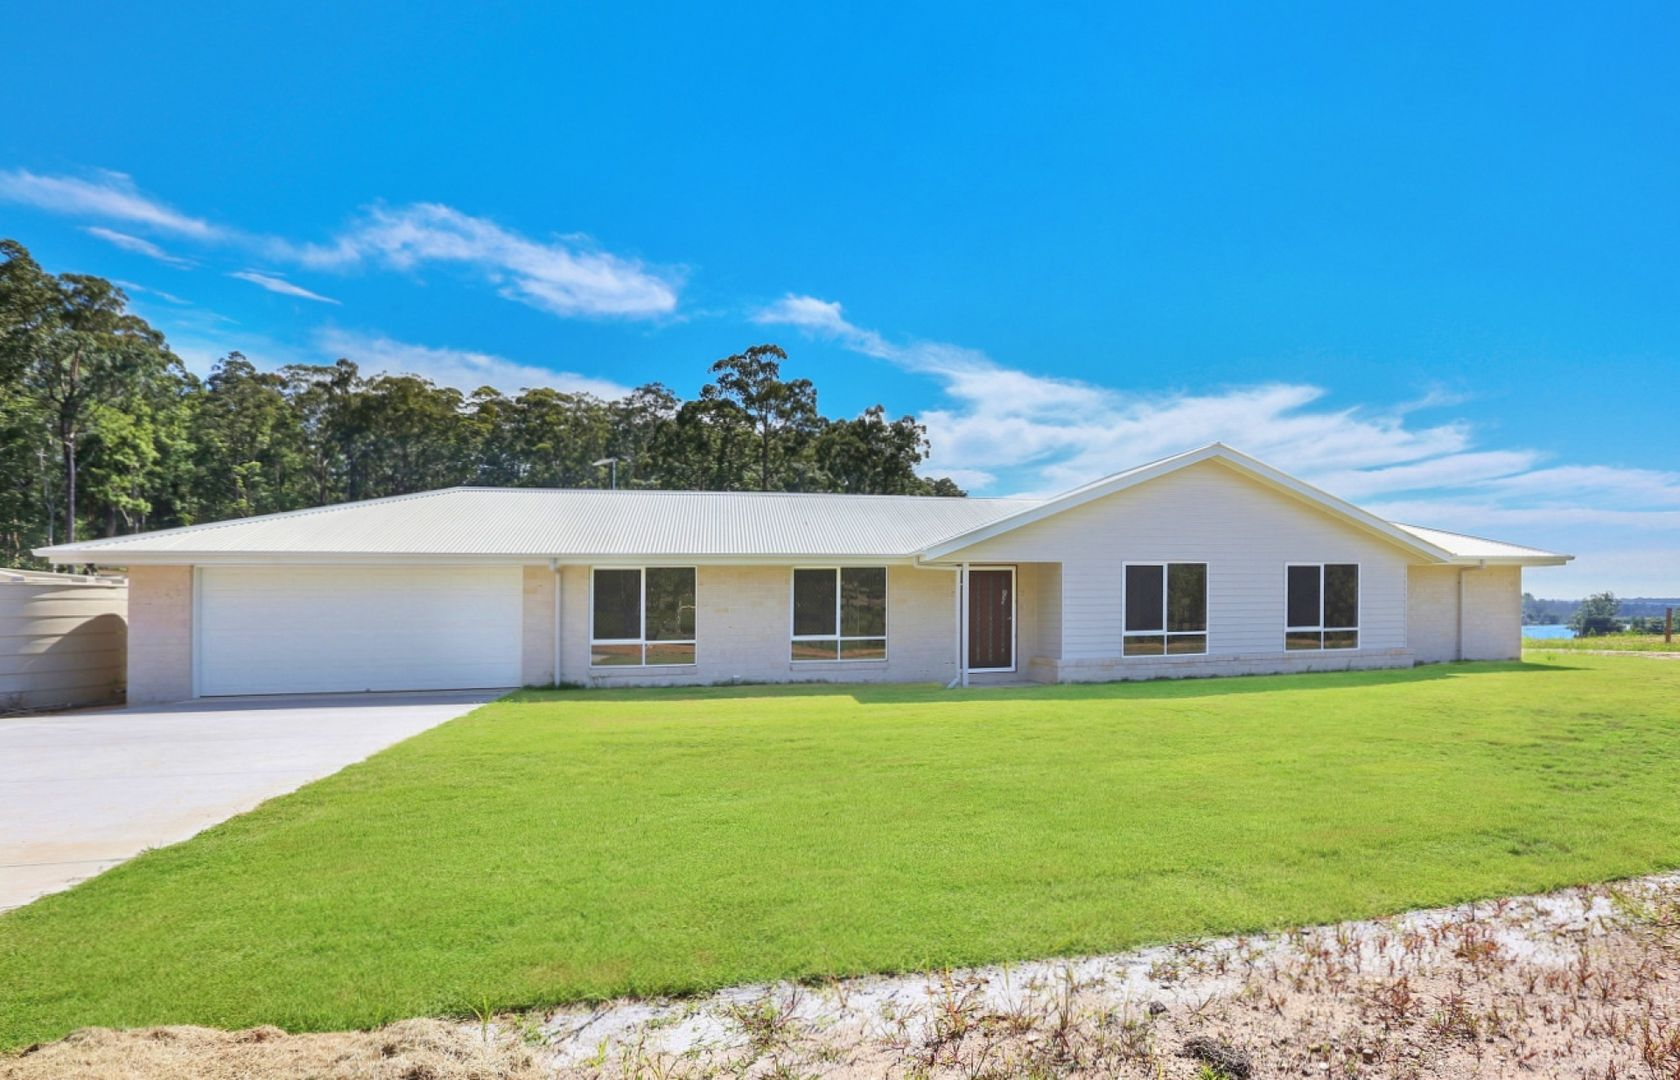 Lot 1, 134 Rosella Drive, Nambucca Heads NSW 2448, Image 2